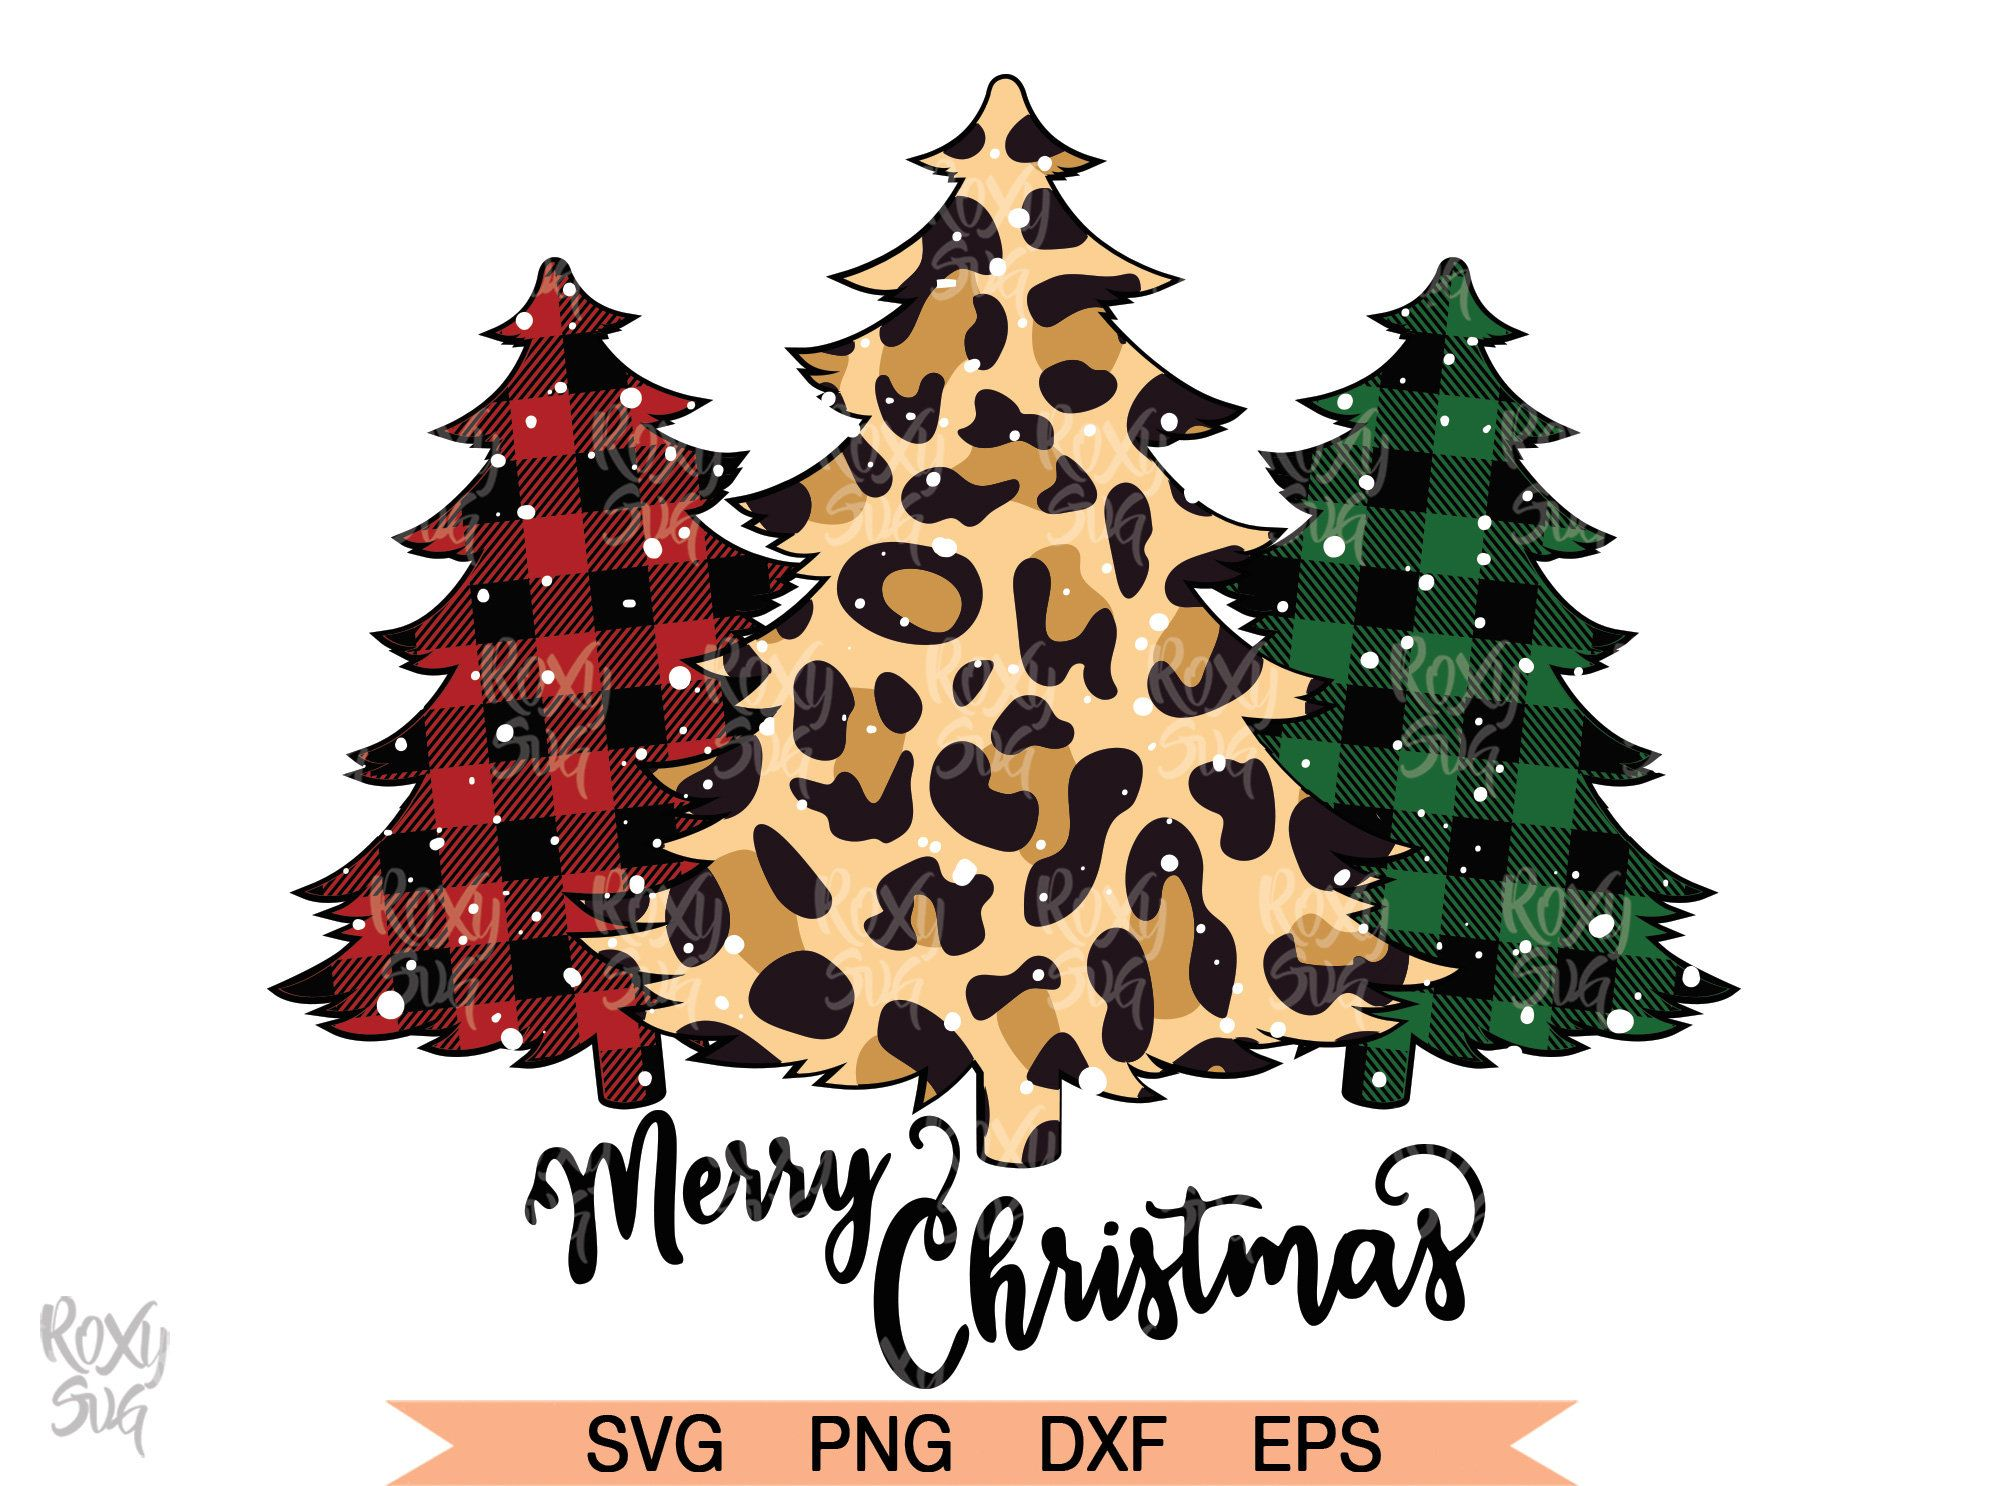 Christmas Tree Svg Christmas Svg Christmas Shirt Svg Merry Etsy In 2020 Christmas Svg Christmas Svg Files Christmas Tree Graphic